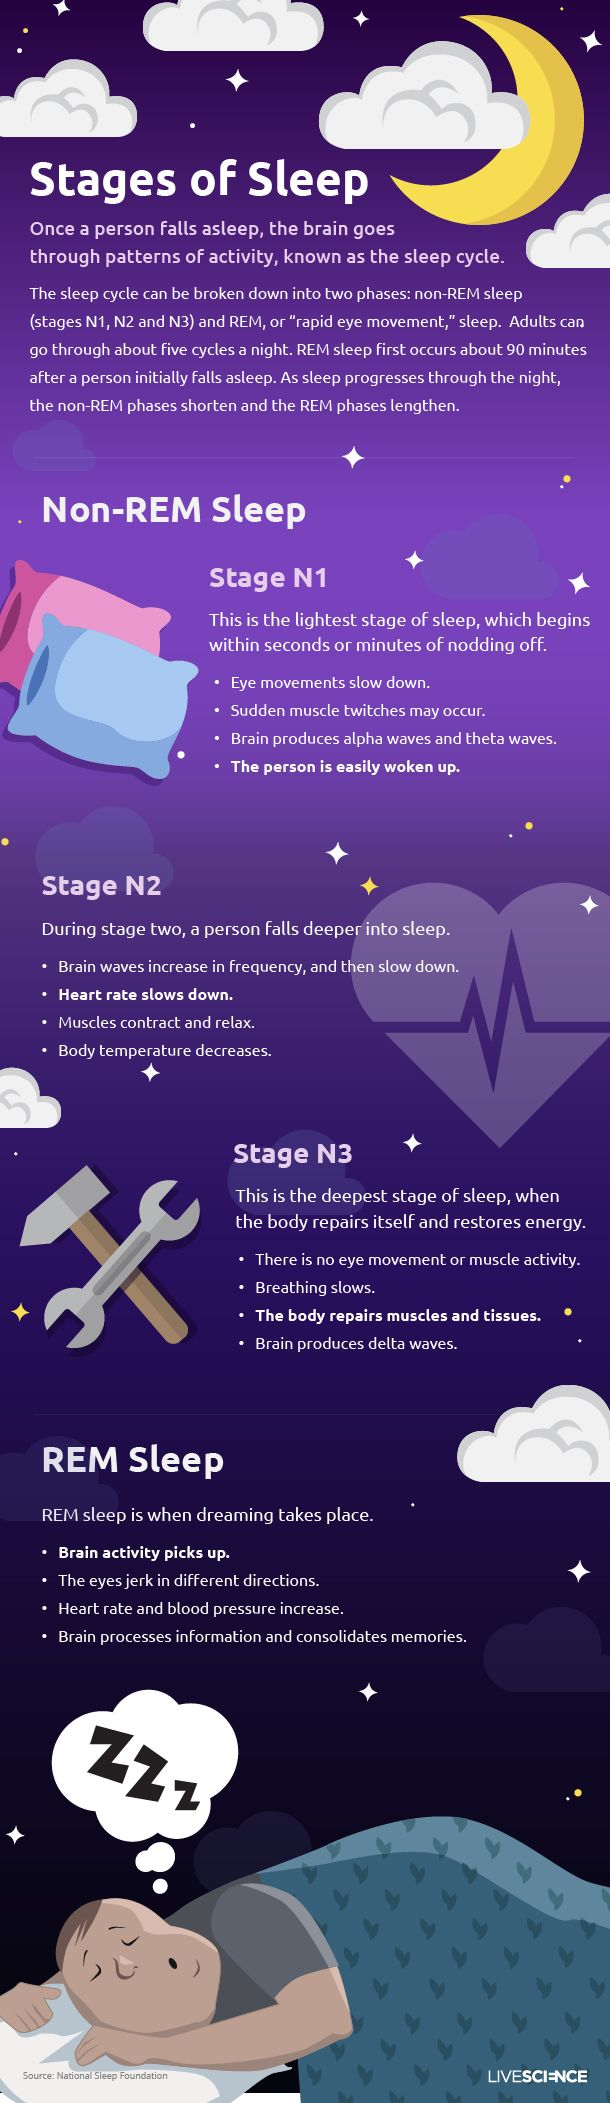 How to Sleep Better | Live Science